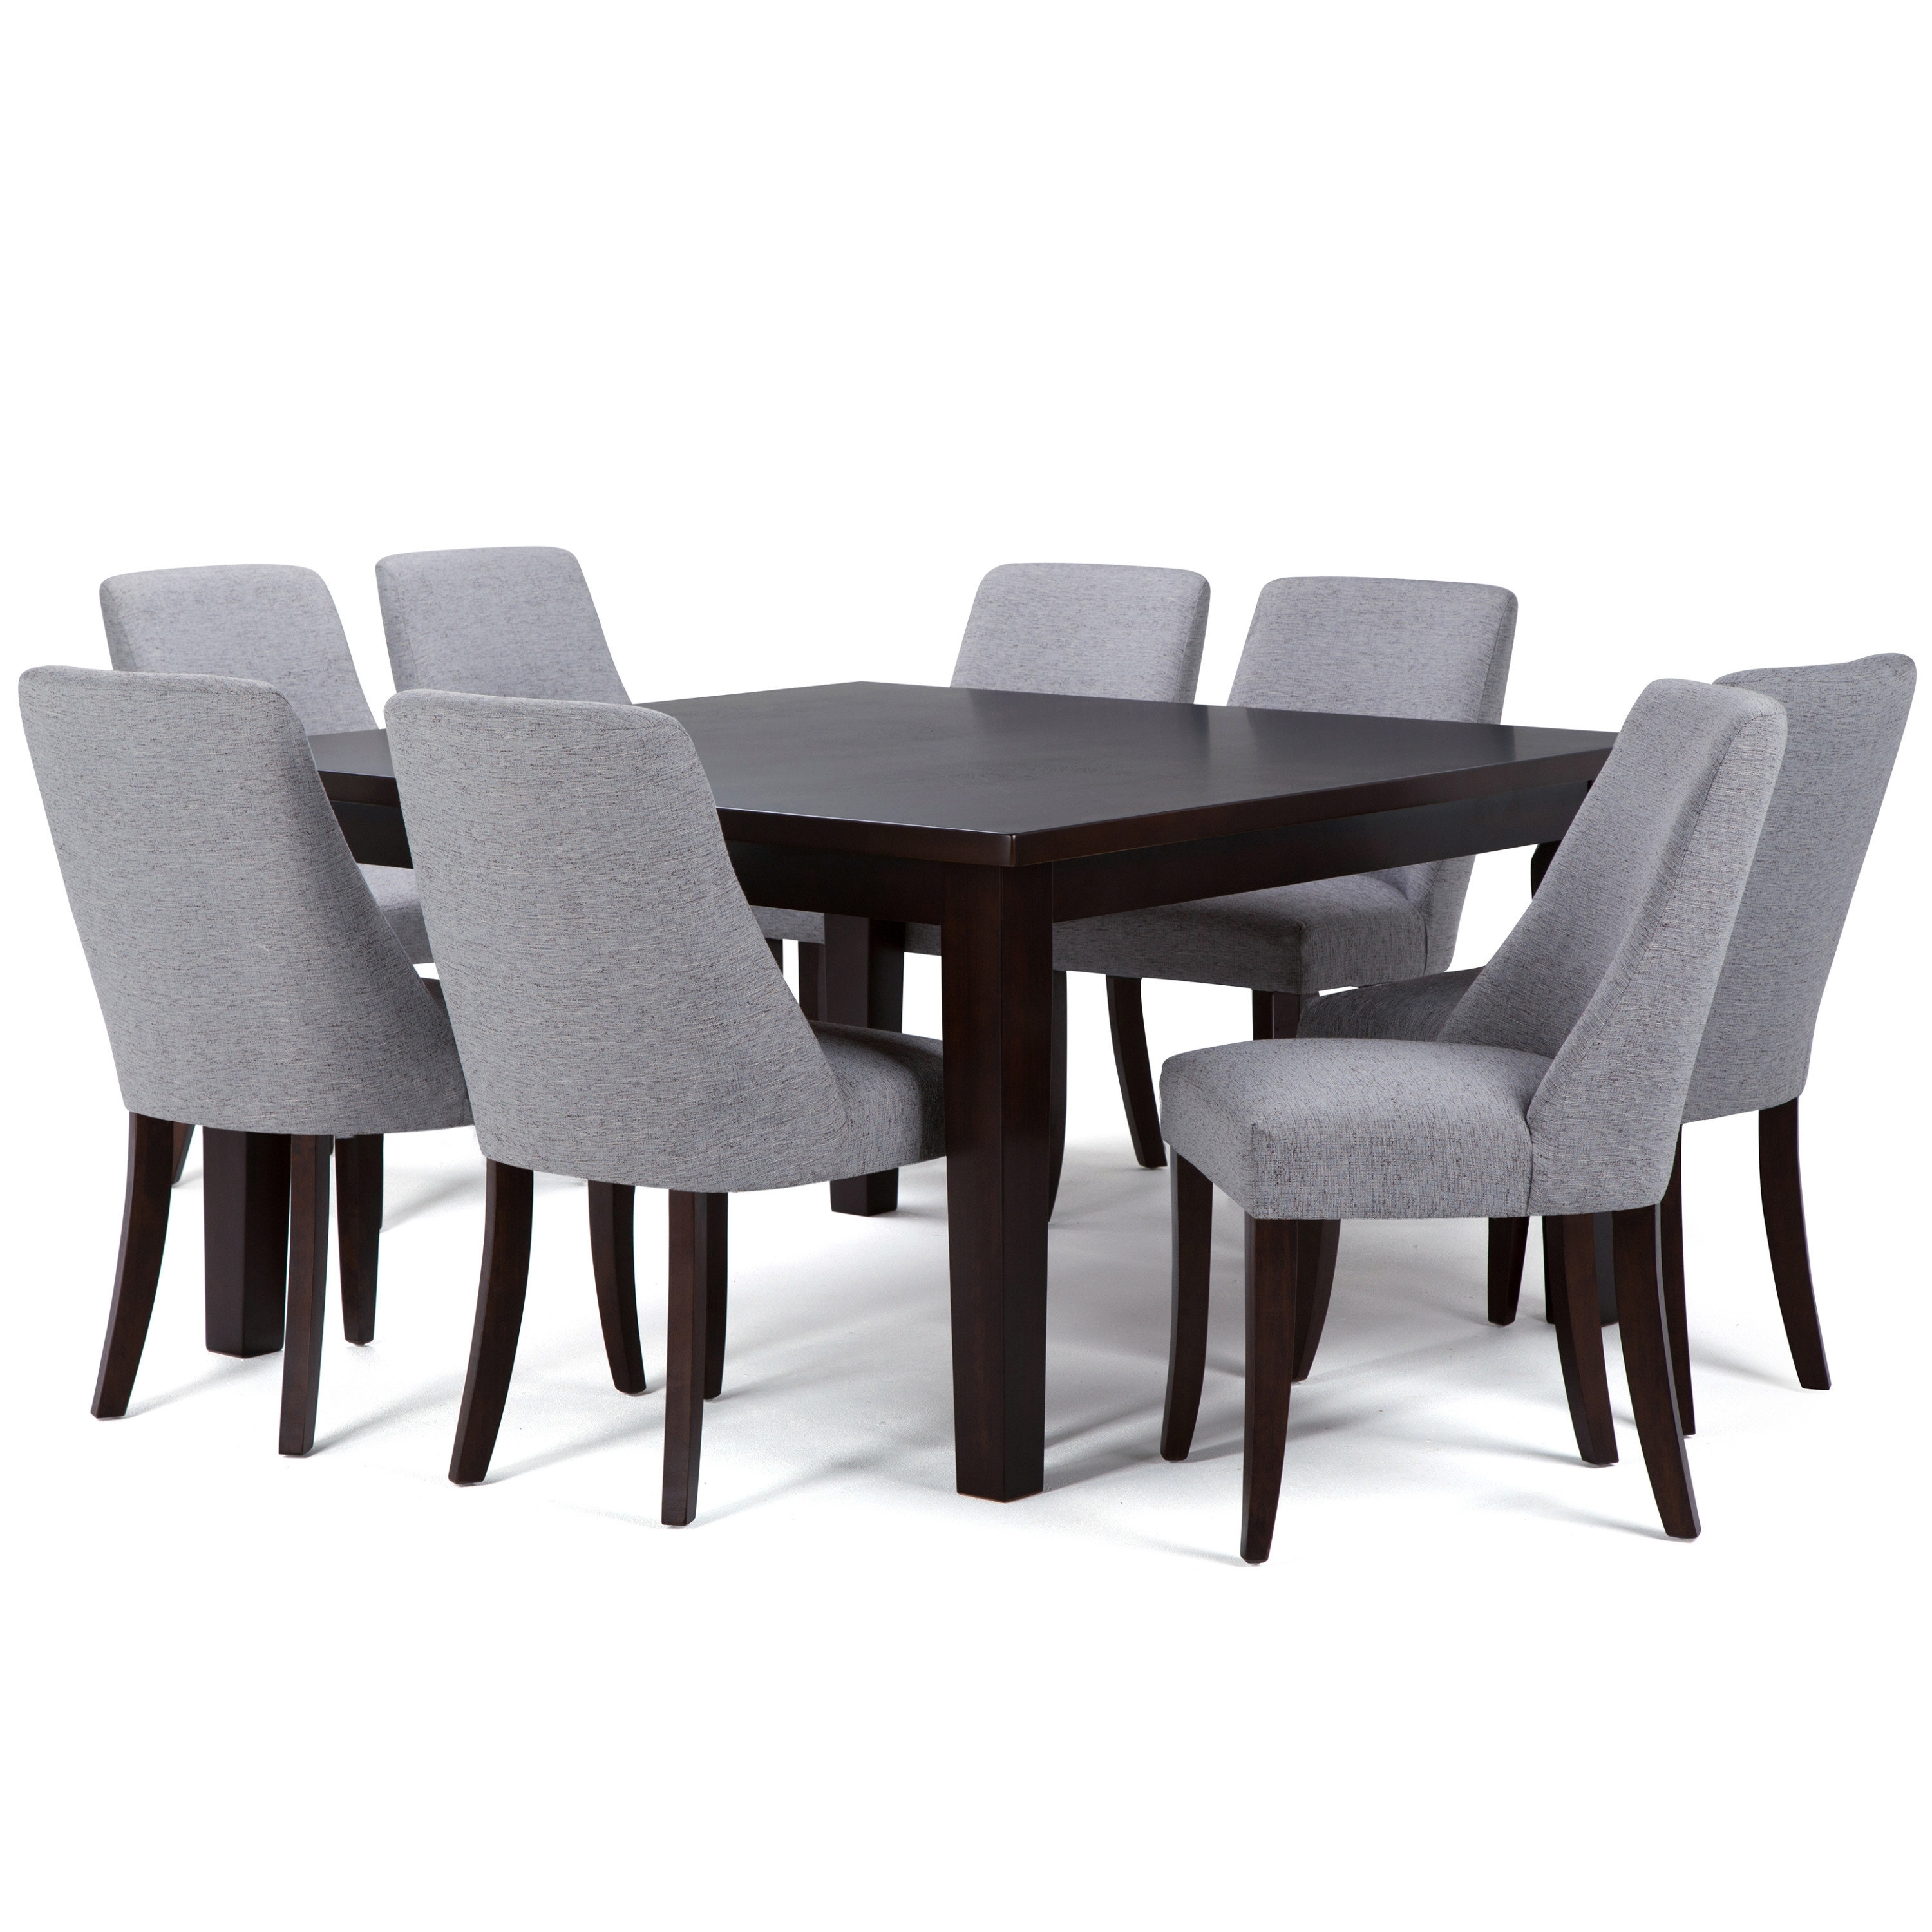 Walden Upholstered Side Chairs With Regard To Recent Simpli Home Walden 9 Piece Solid Wood Dining Set (#16 of 20)